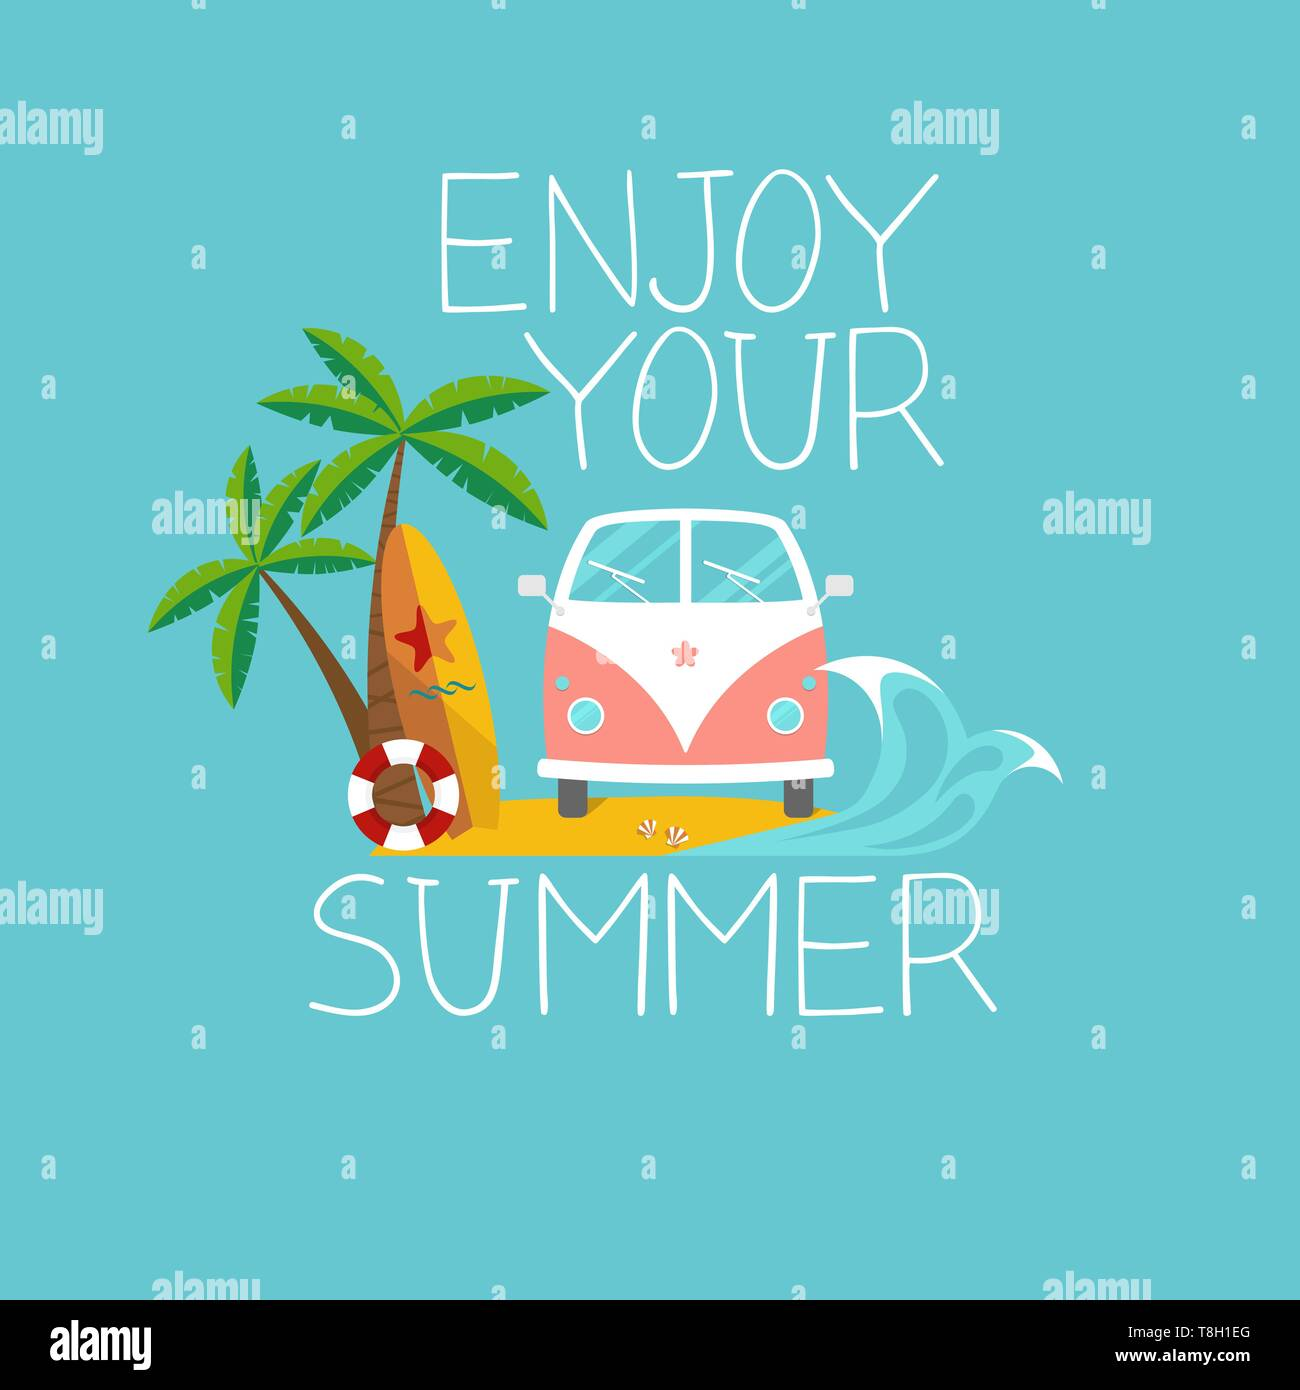 flat summer background with retro van on the beach, surfboard, palms and slogan 'enjoy your summer' - Stock Vector